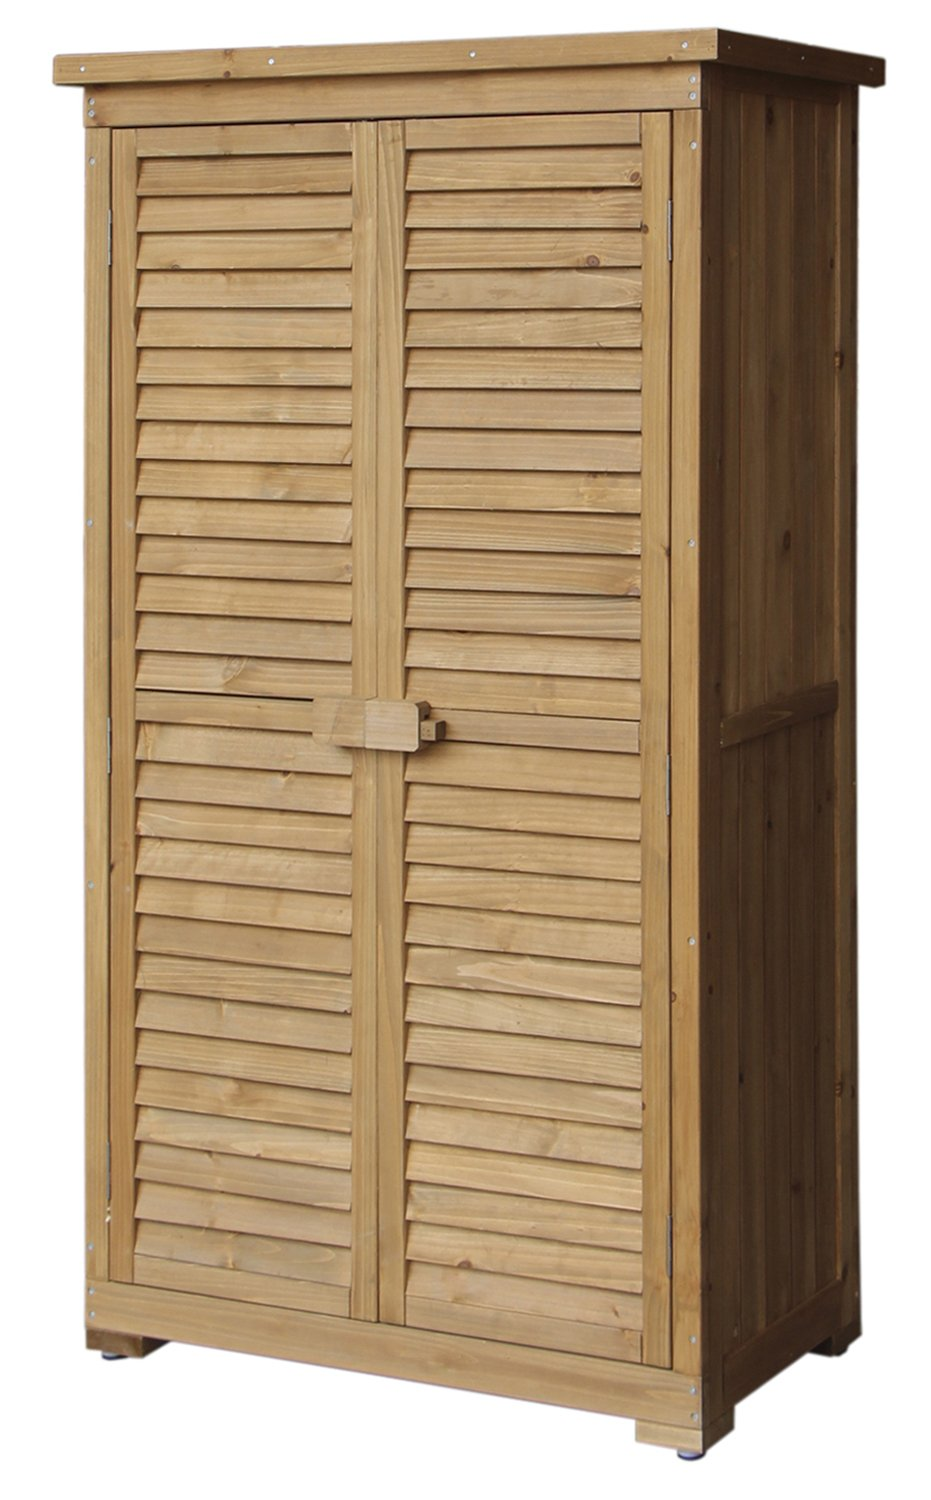 Merax Wooden Garden Shed Wooden Lockers with Fir wood (Natural wood color –Shutter design)